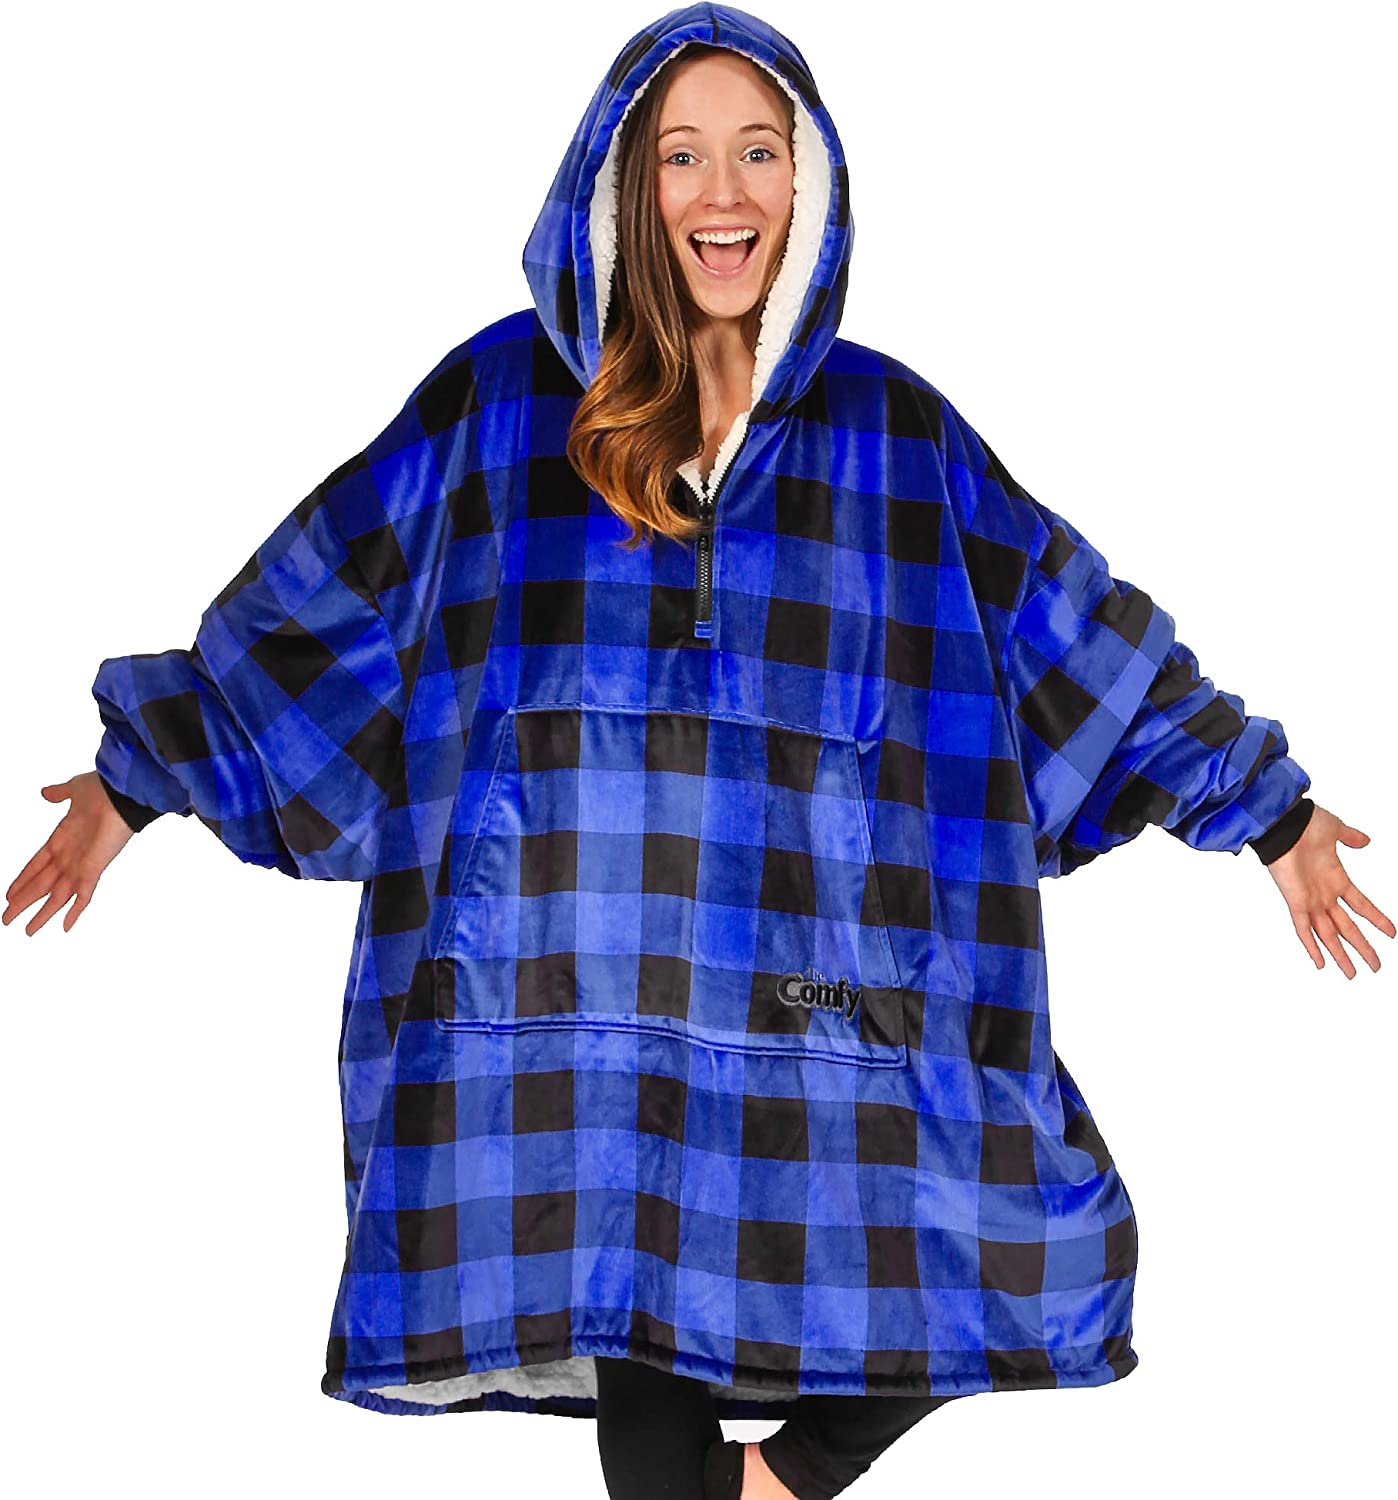 THE COMFY Quarter Zip   Oversized Microfiber & Sherpa Wearable Blanket, Seen On Shark Tank, One Size Fits All, Blue Plaid